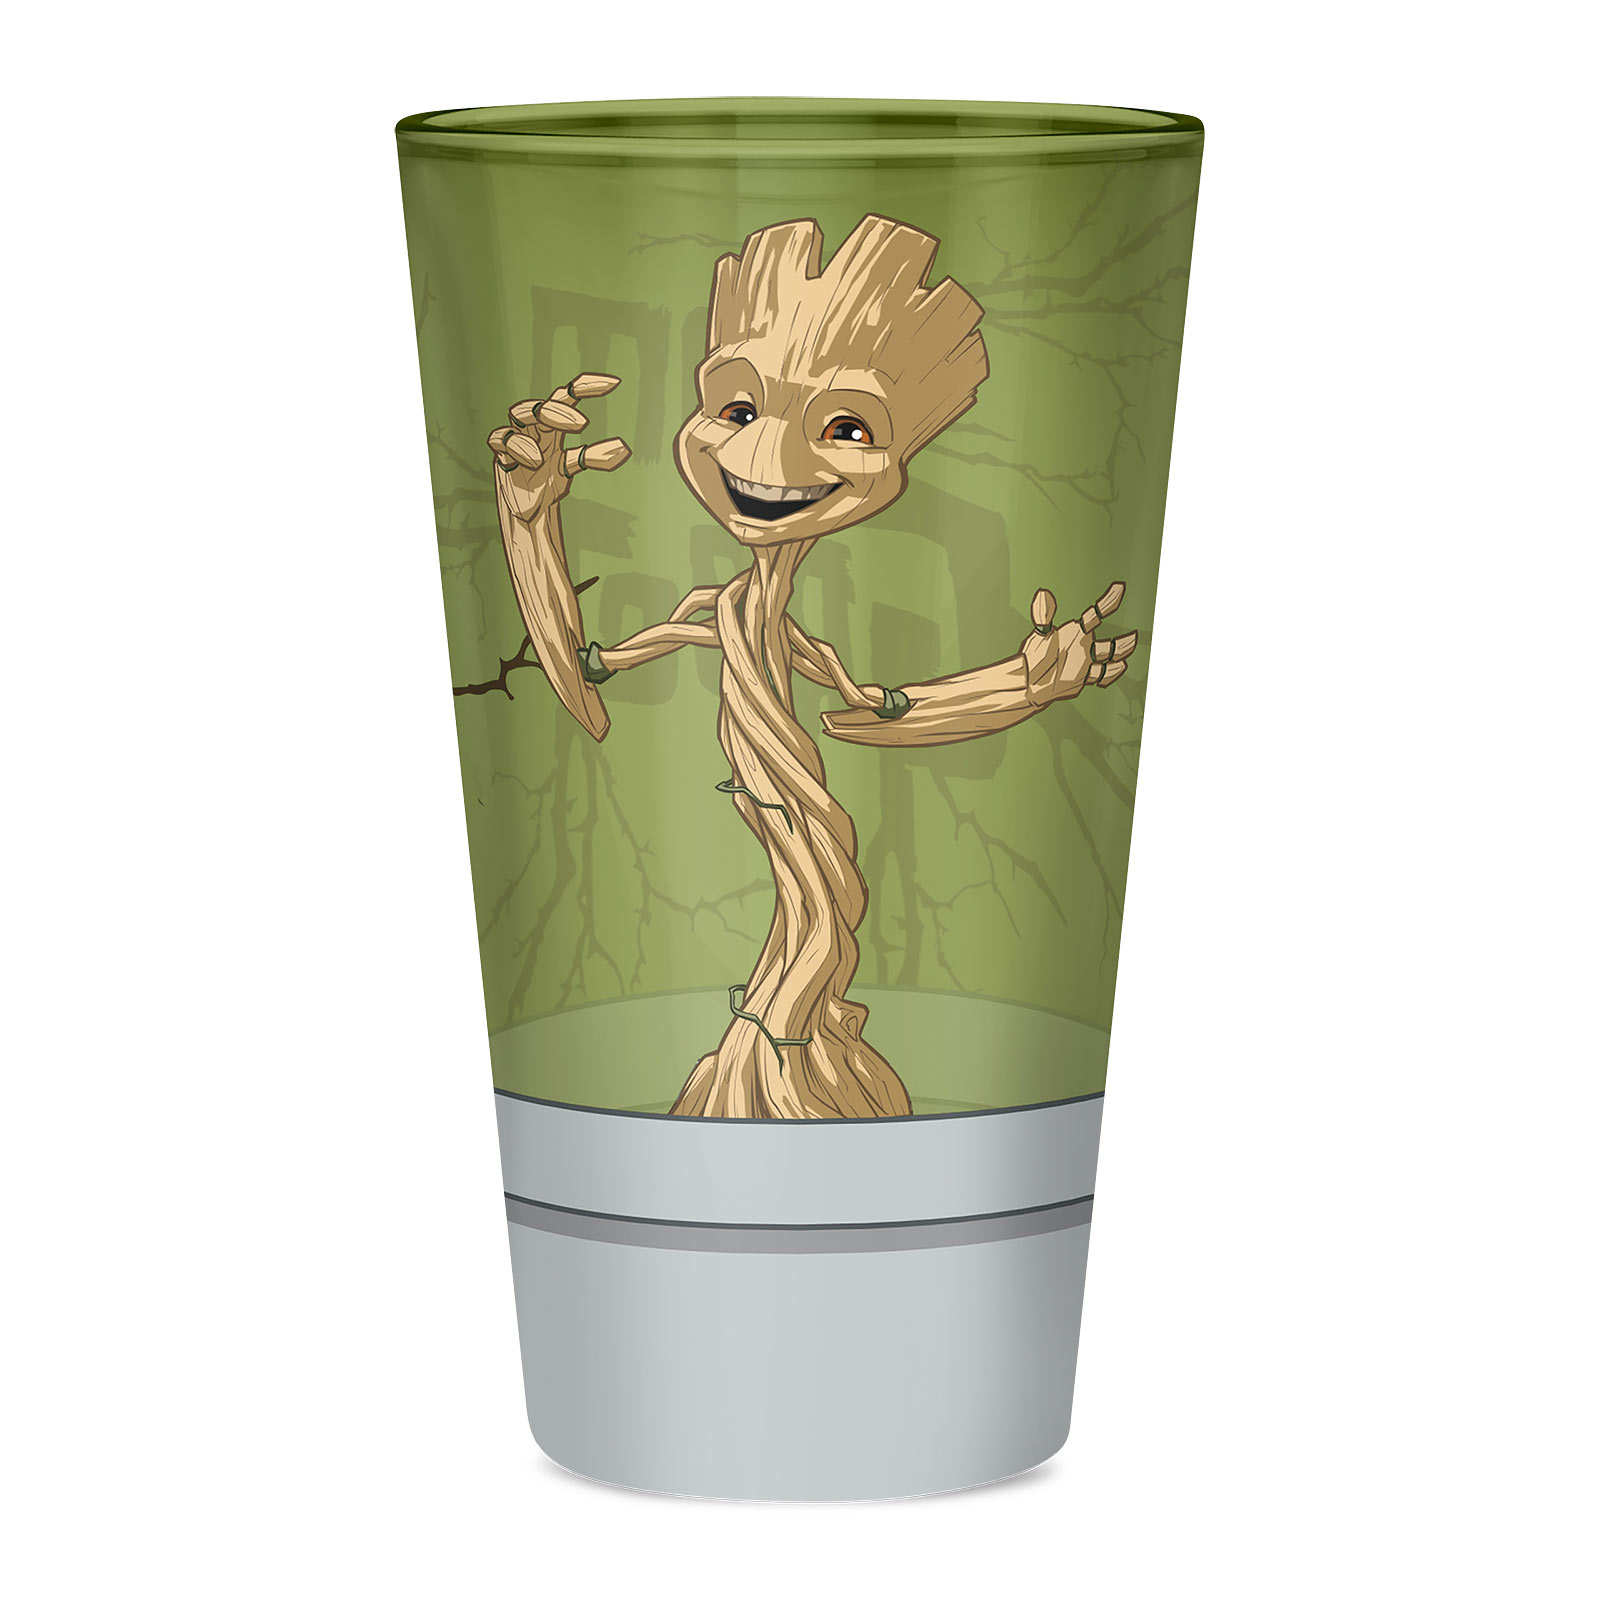 Guardians of the Galaxy - Groot Glas